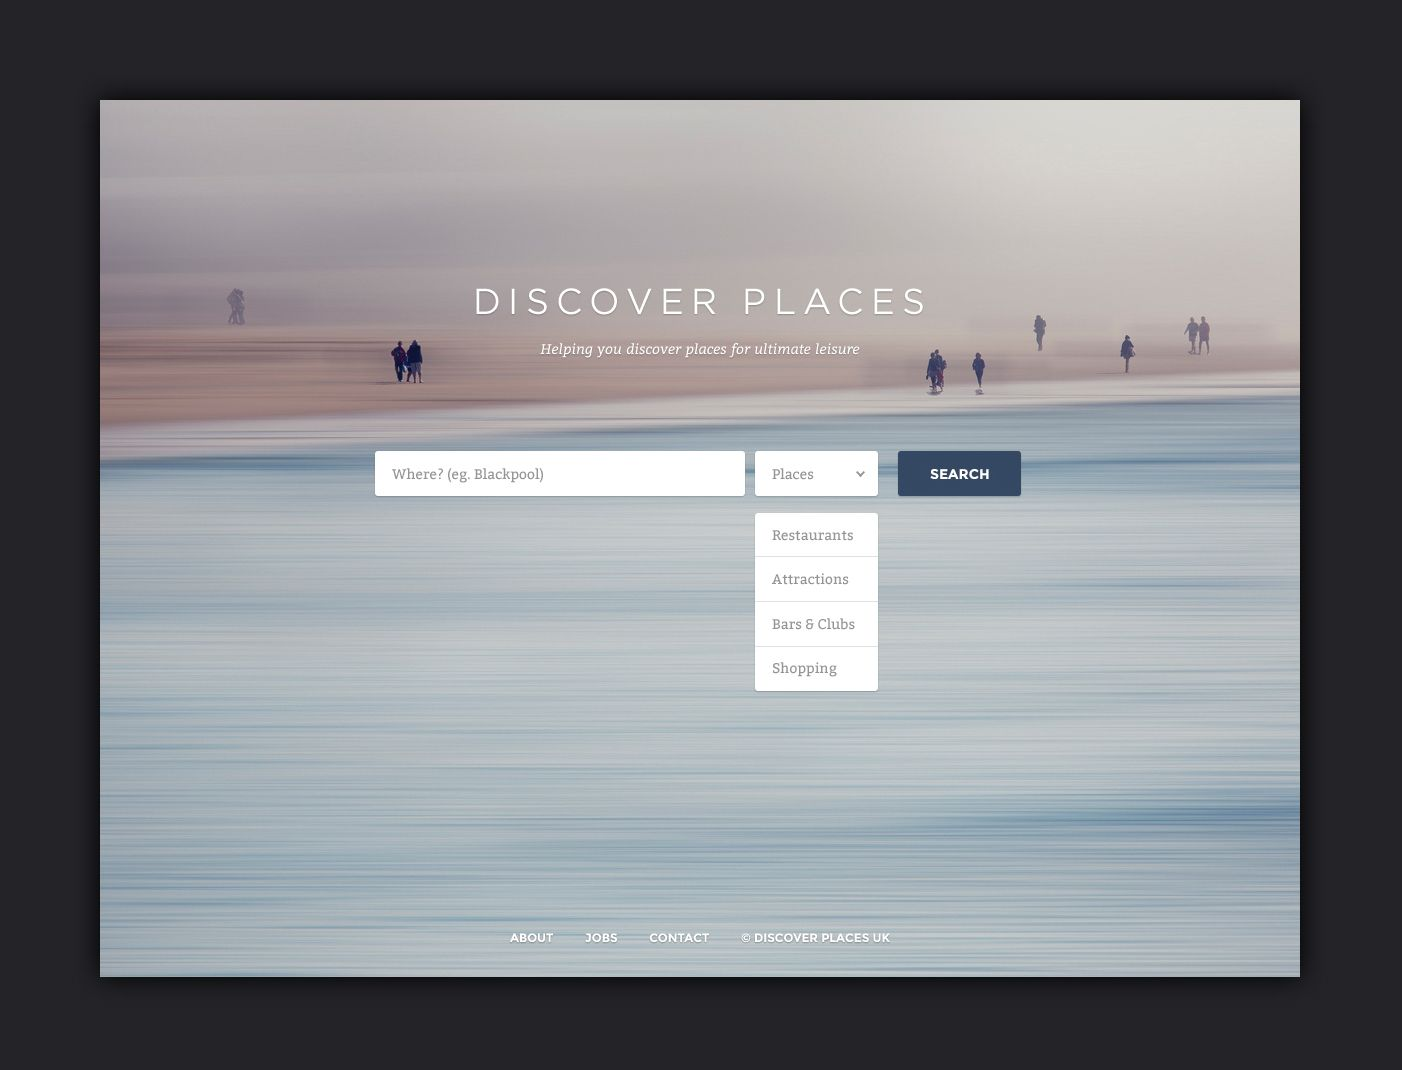 Discover_places